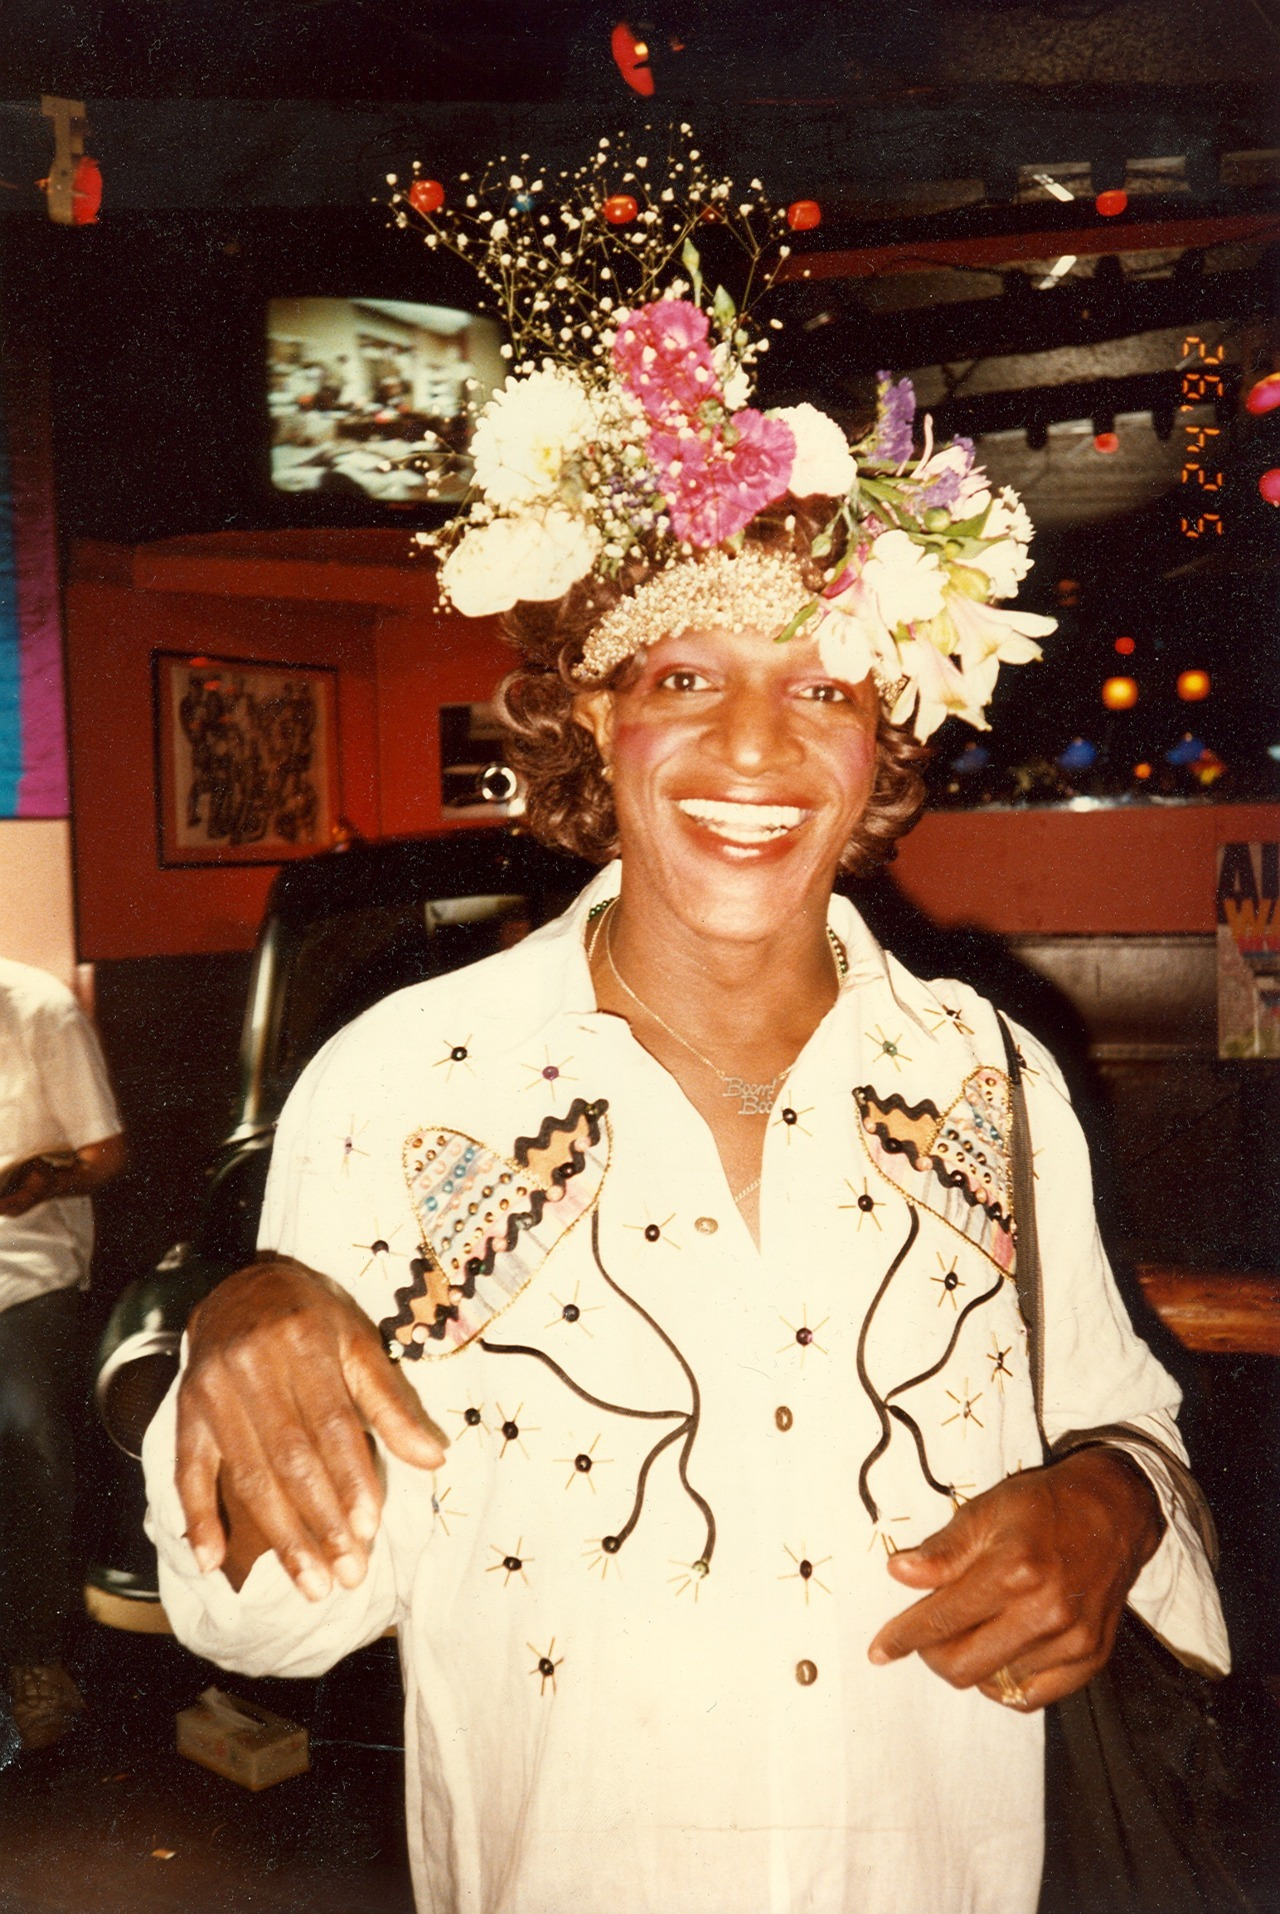 Marsha P Johnson photo by Randy Wicker